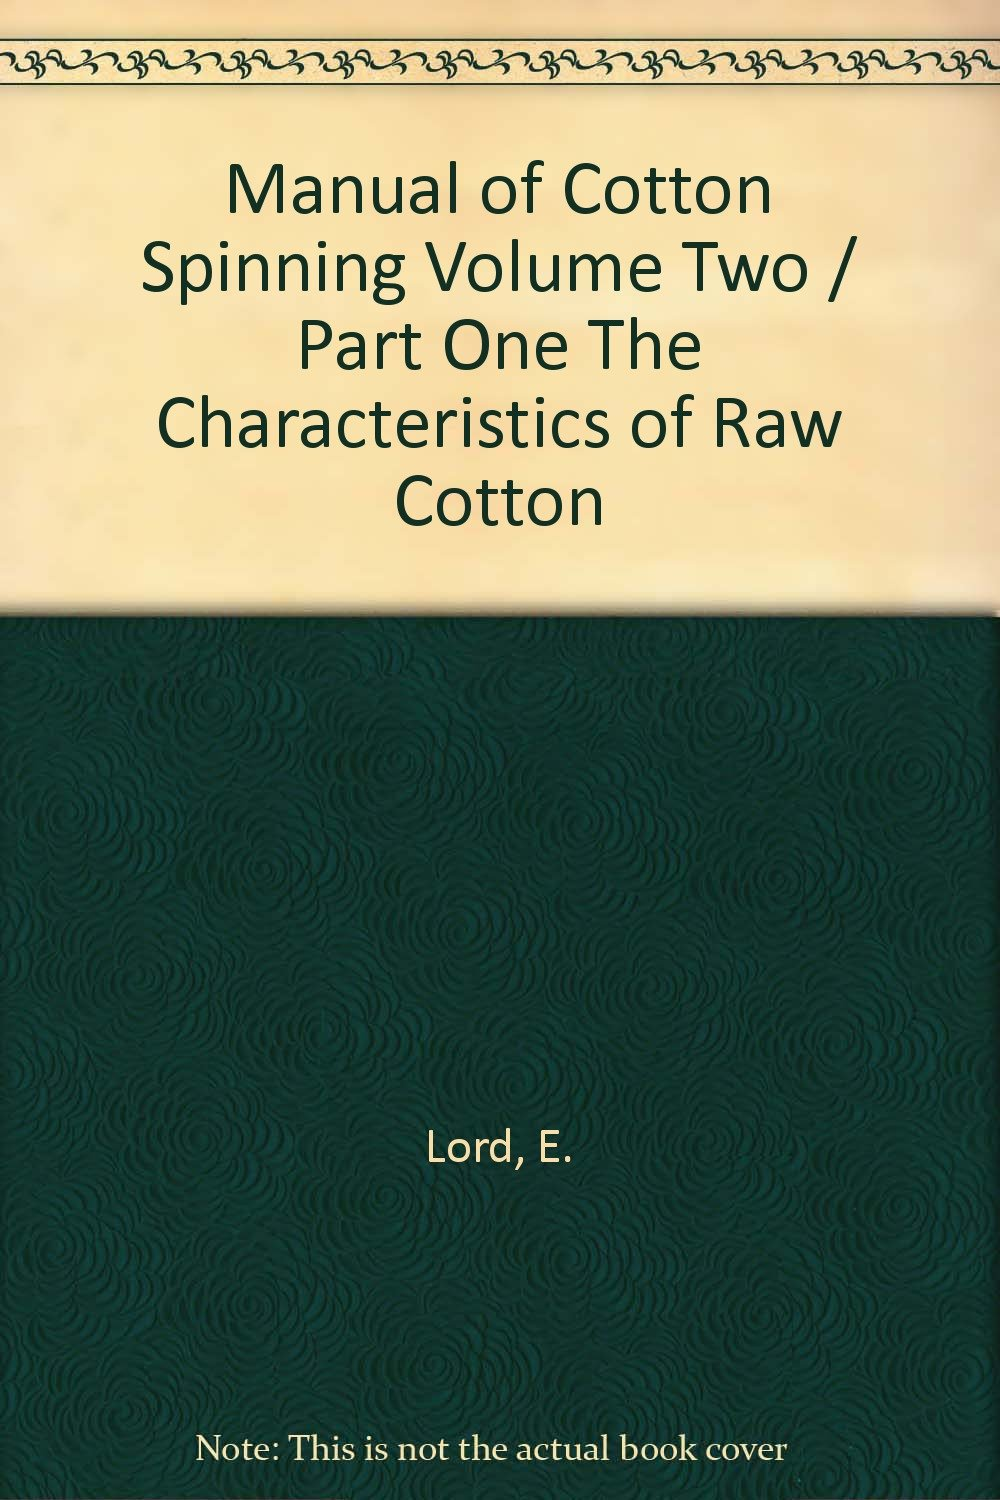 Manual of Cotton Spinning Volume Two / Part One -- The Characteristics of Raw Cotton